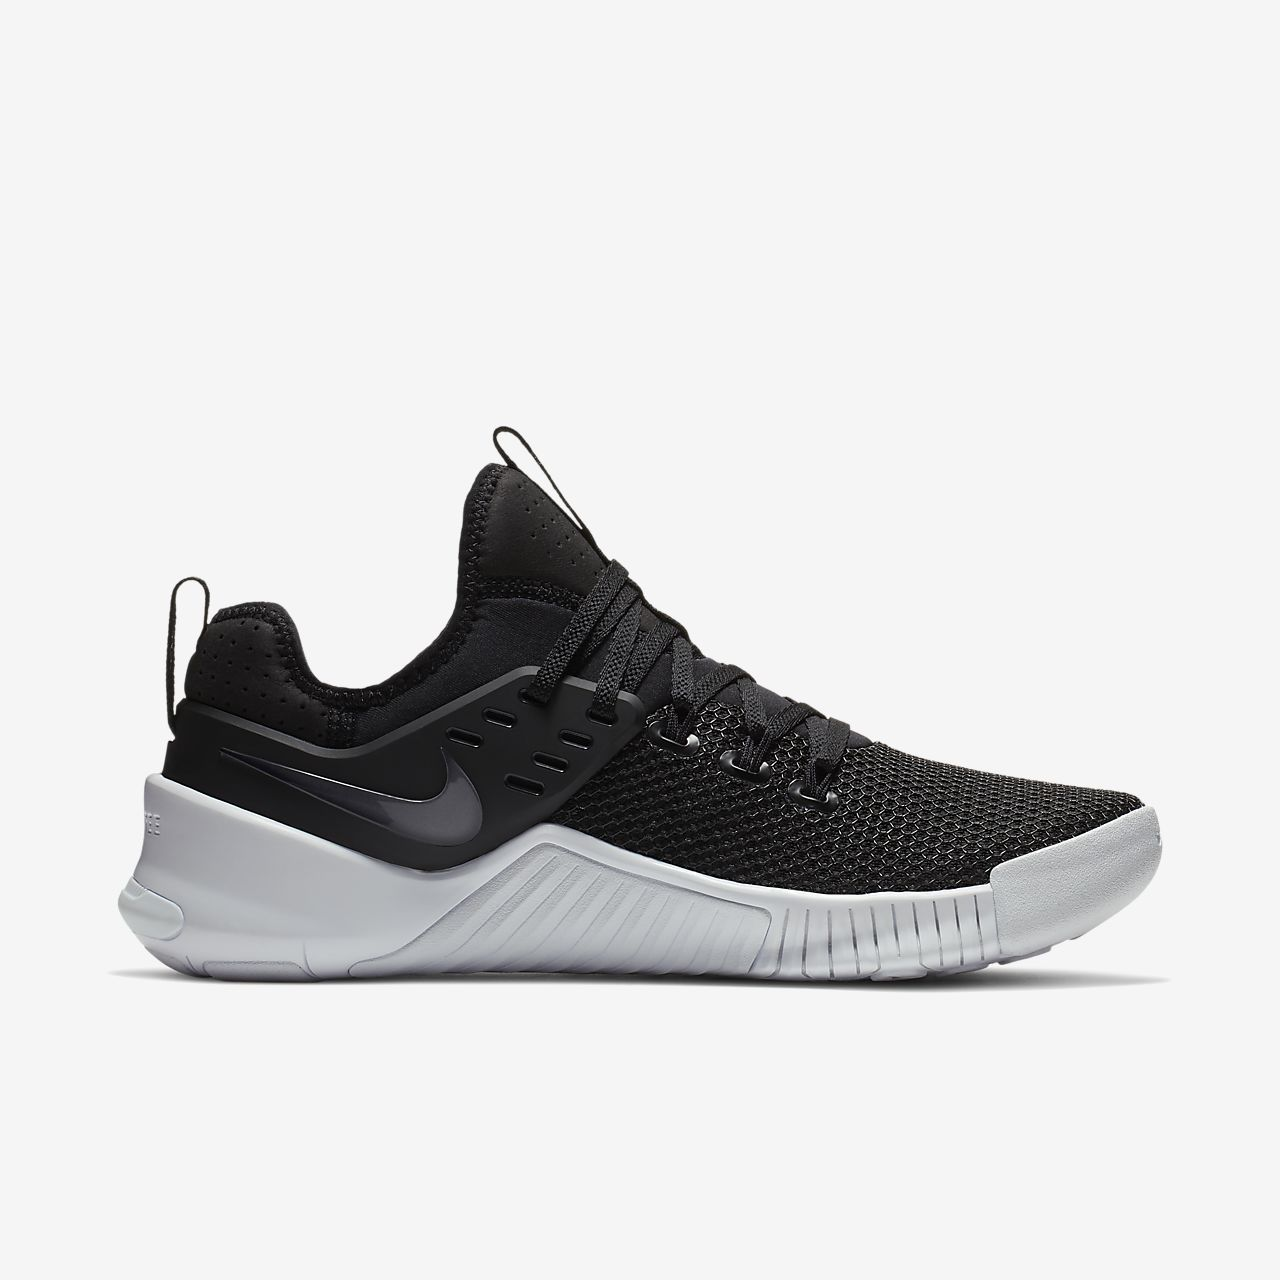 8542c57d9594 Nike Metcons   Buy Nike Shoes   Sneakers - Bluelilyandblue.com